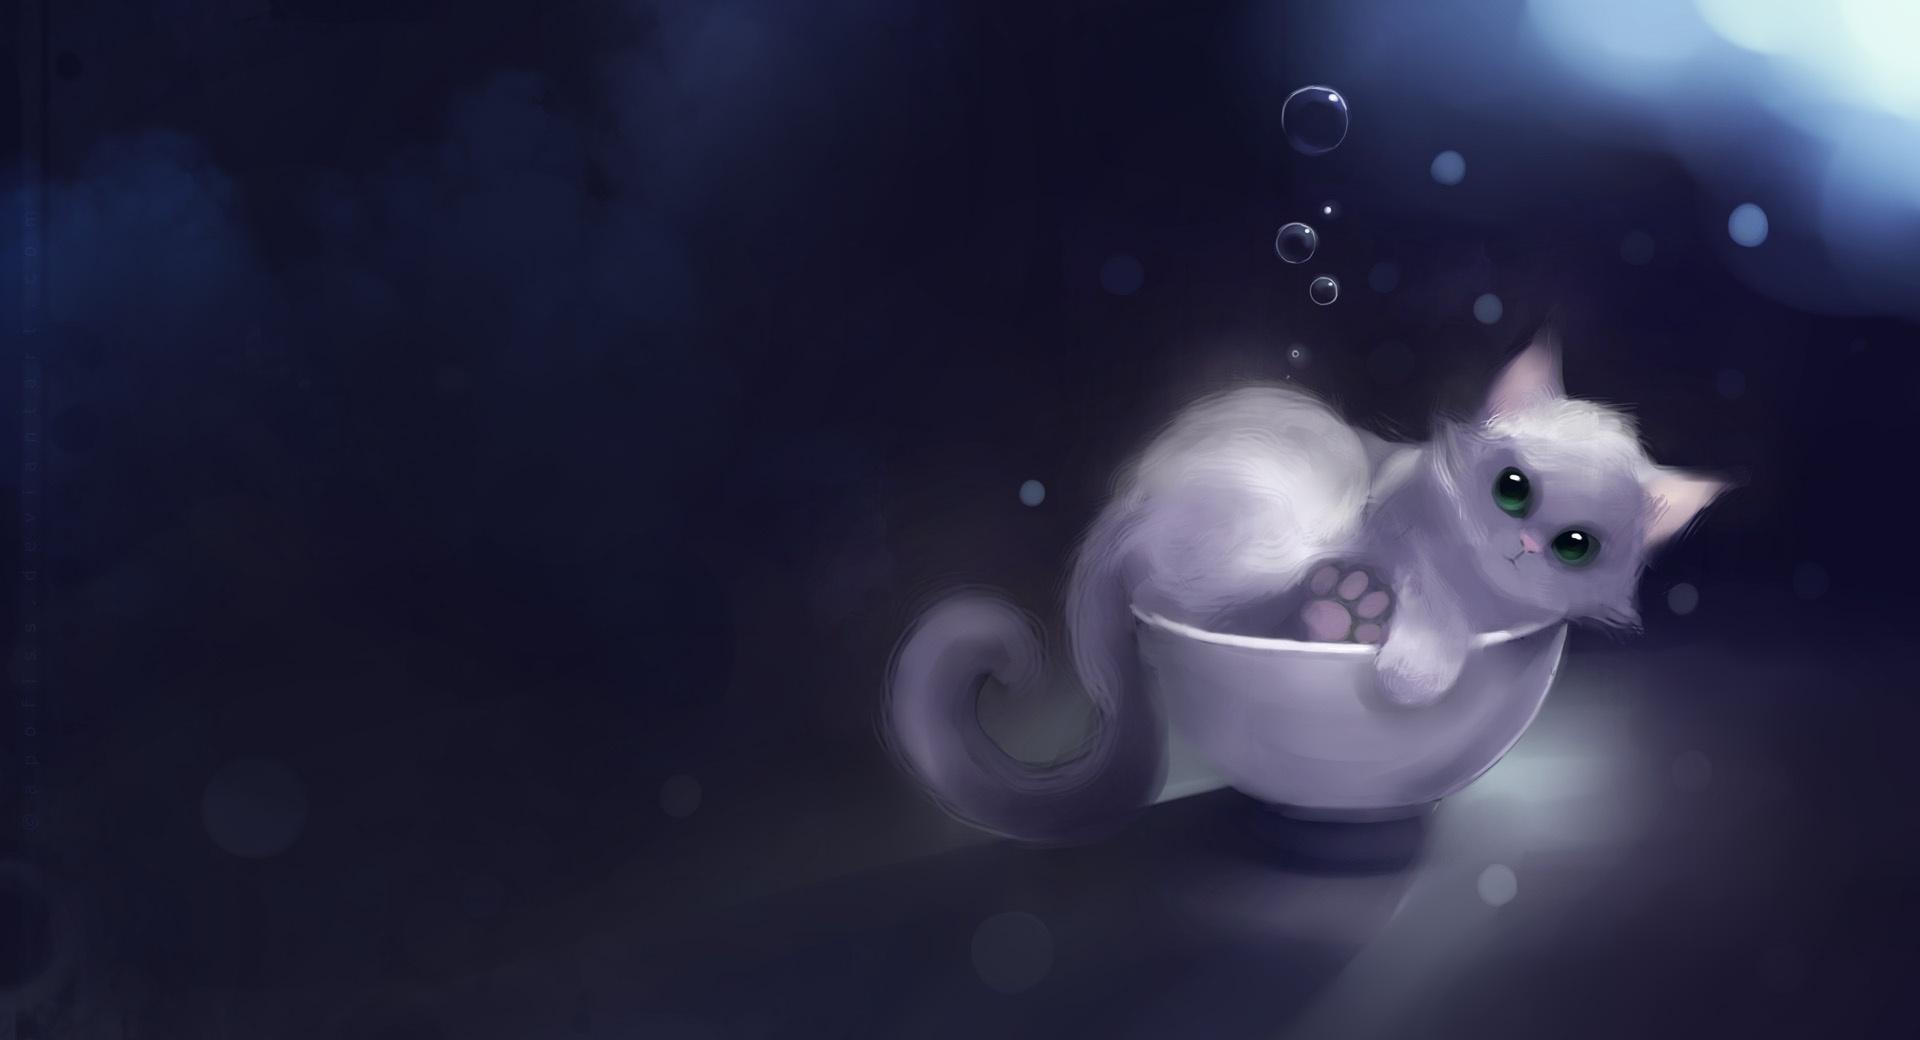 White Kitty In A Bowl Painting wallpapers HD quality